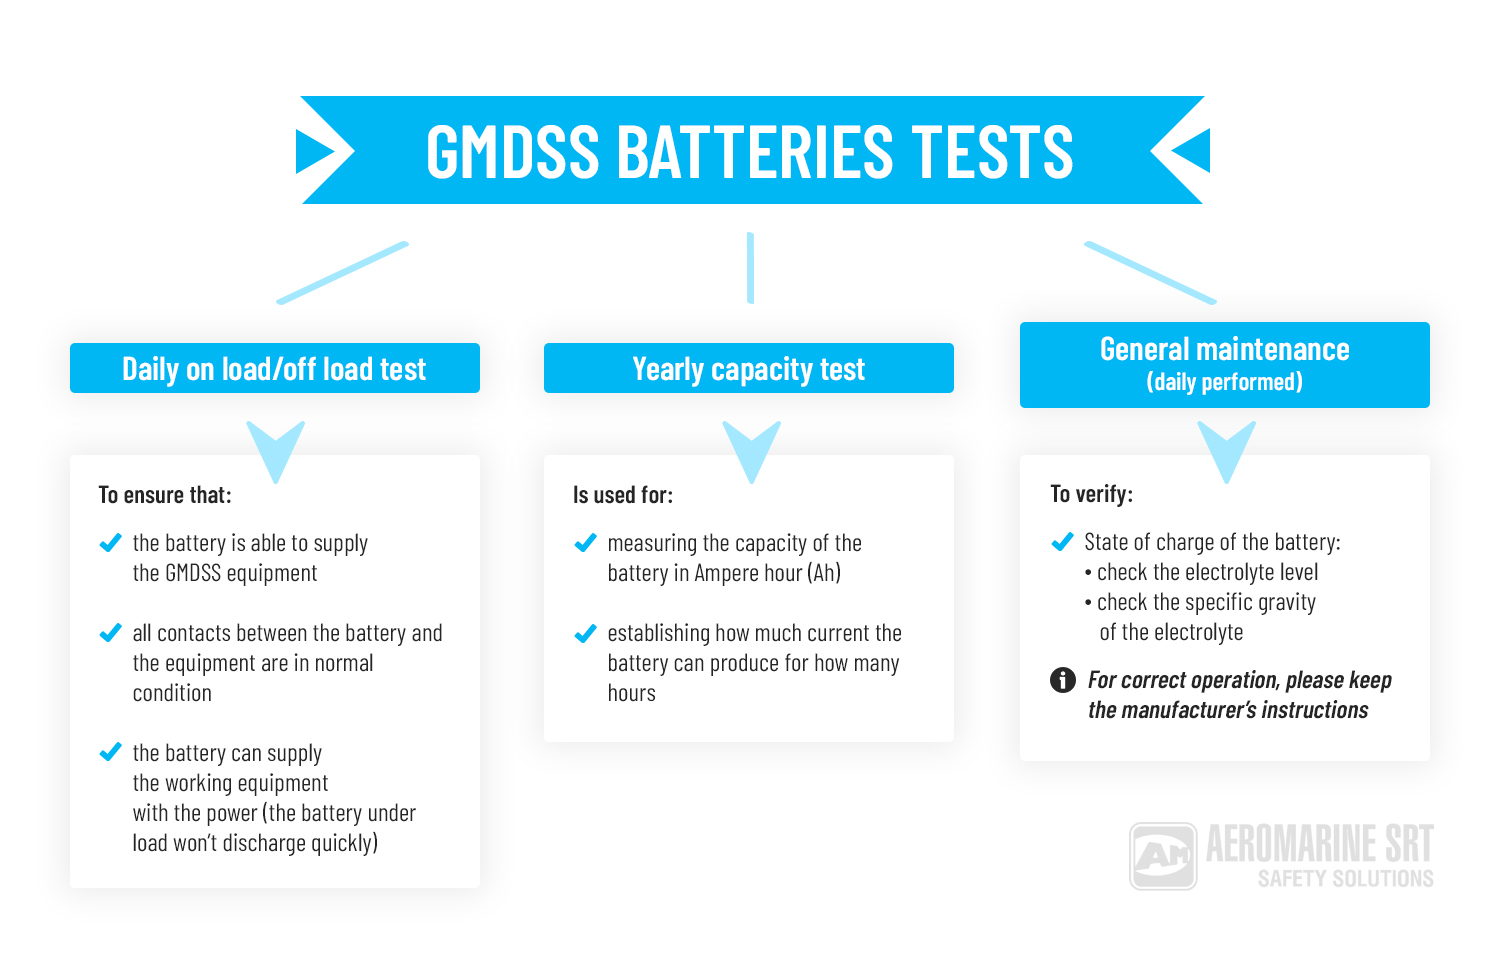 GMDSS Batteries Tests